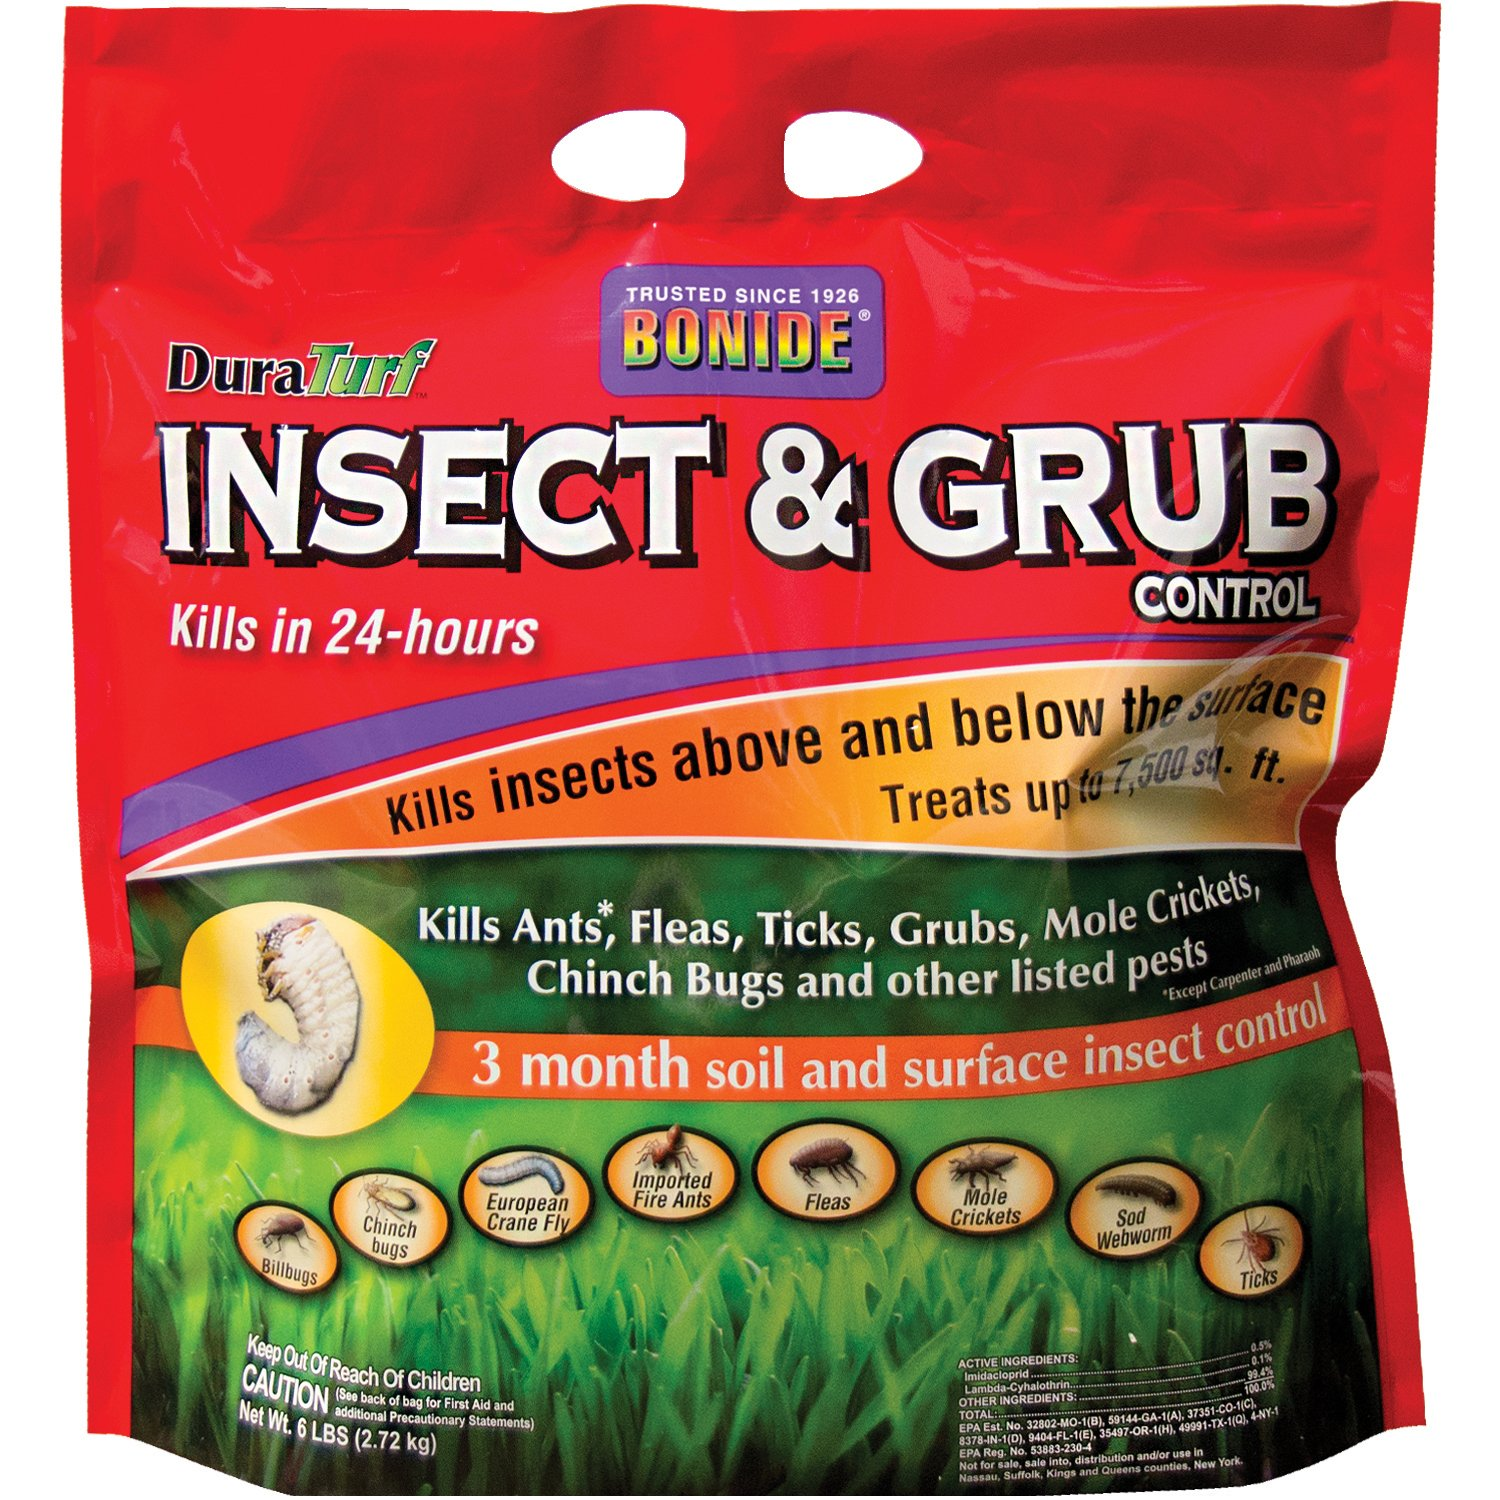 6 Best Insect Killers for Lawn in 2019: Reviews & Comparisons